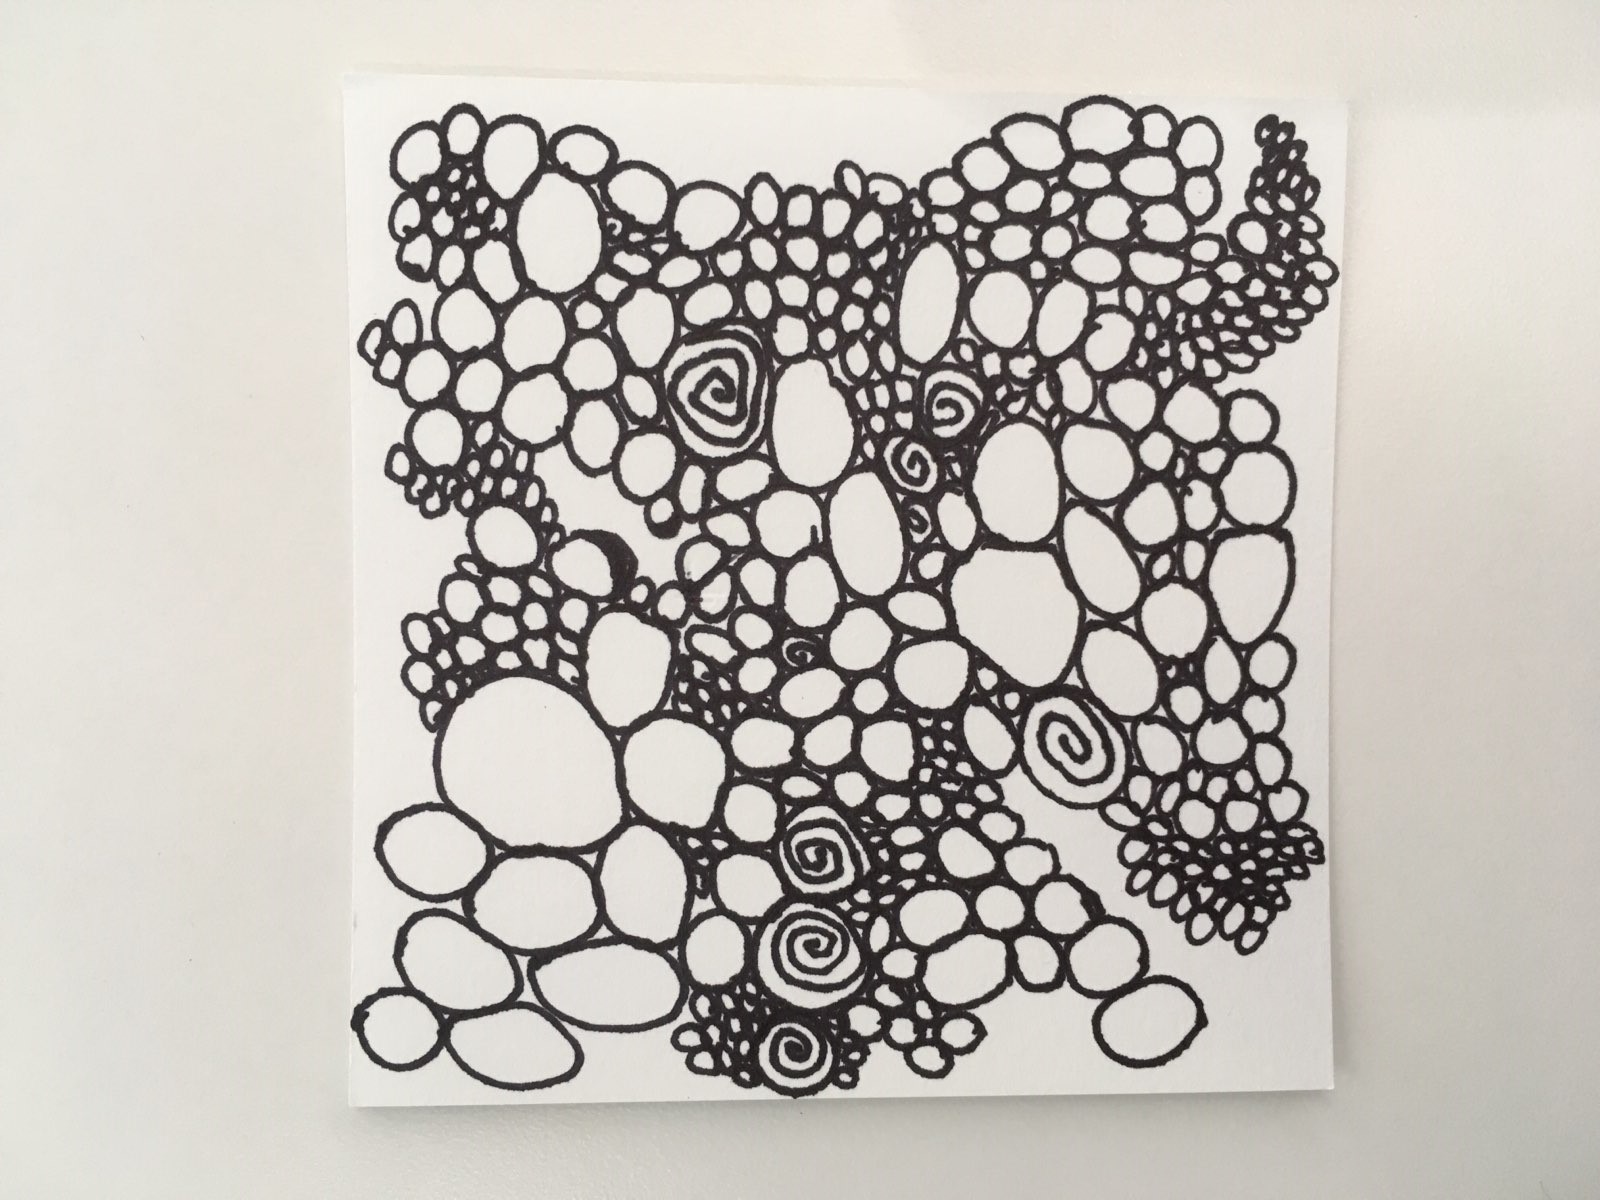 Paper square filled with randomly shaped and placed circles drawn with blank ink lines.